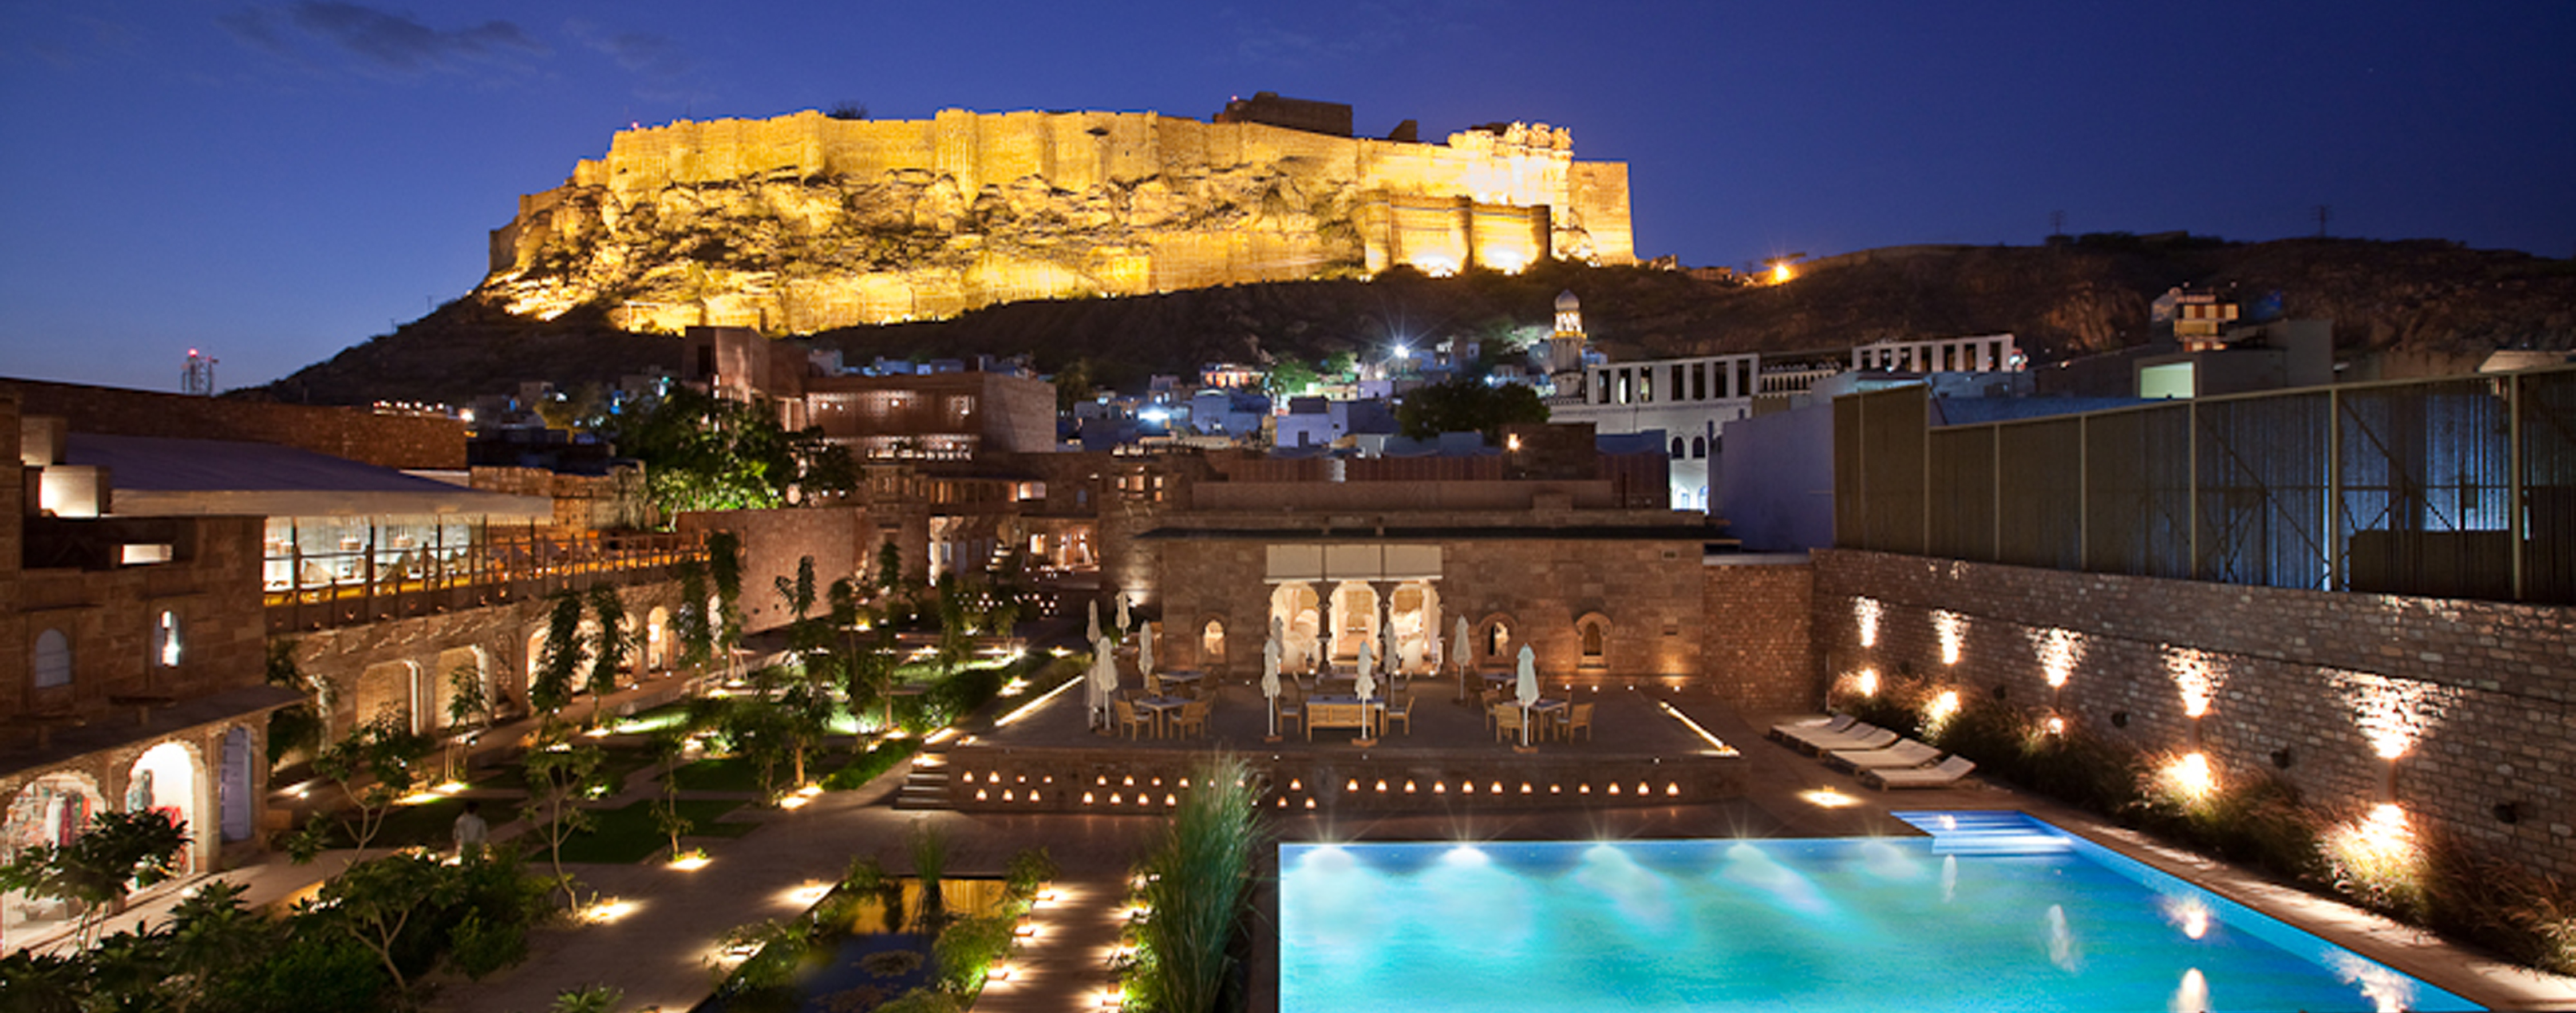 RAAS-Jodhpur-night-view